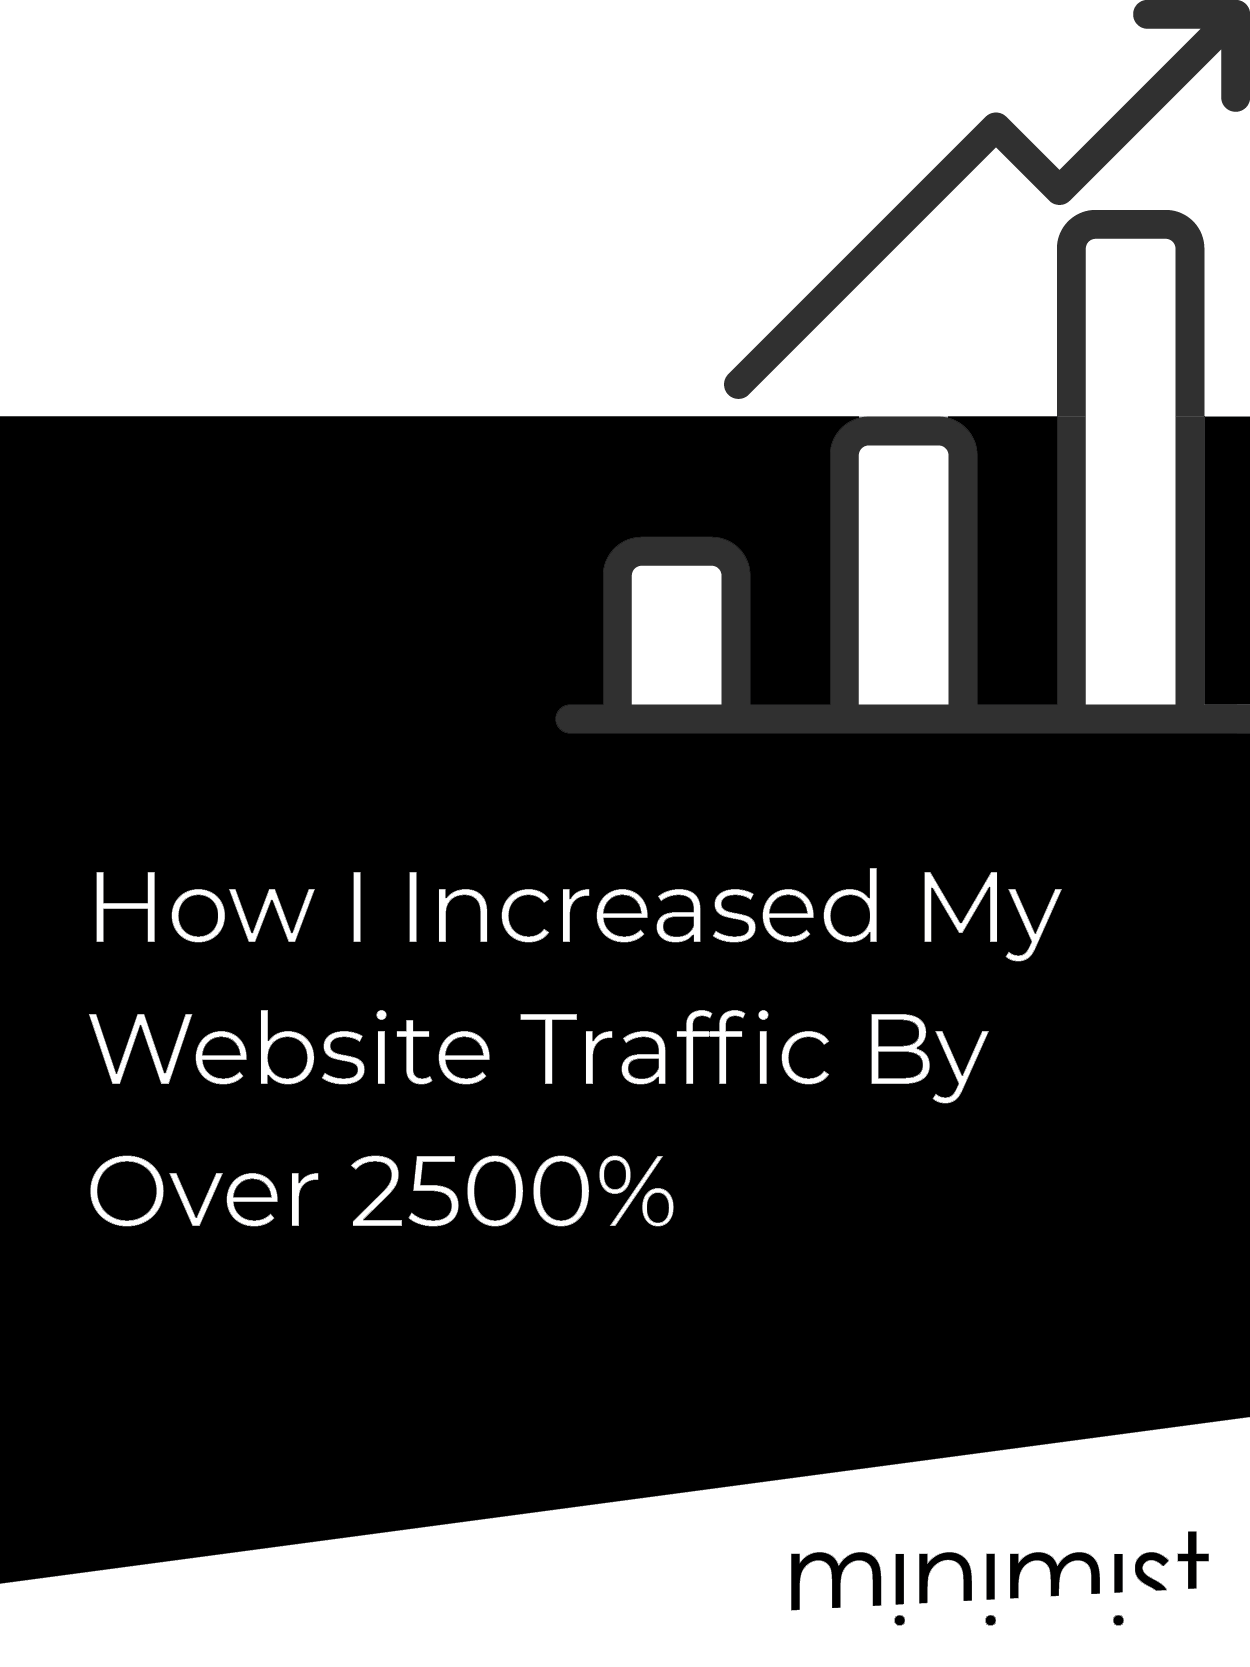 How I Increased My Website Traffic By Over 2500%